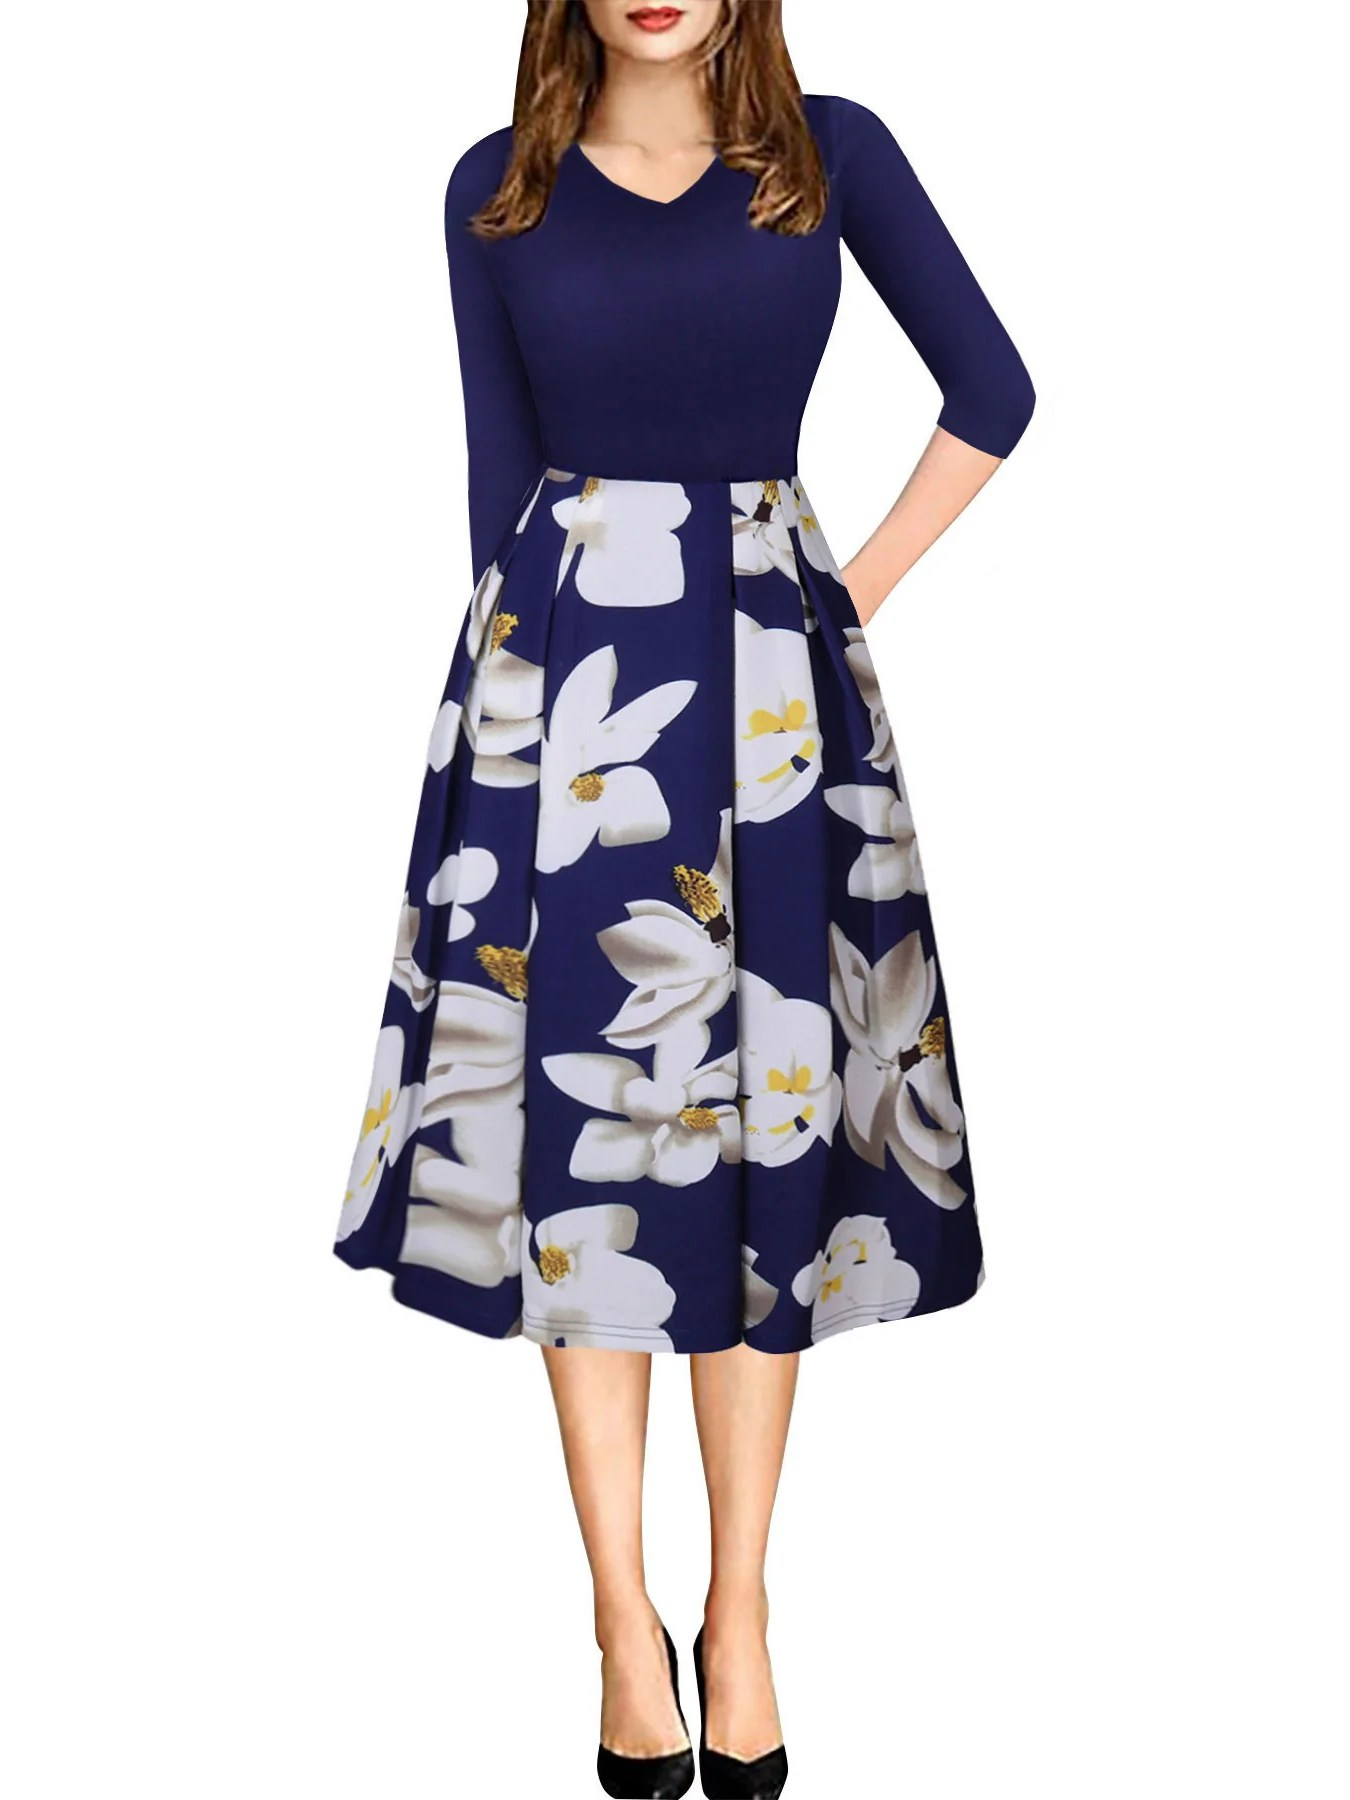 d1b8f1490 Navy Blue V Neck Floral Printed Skirt 3/4 Sleeve Midi Dress Mynystyle